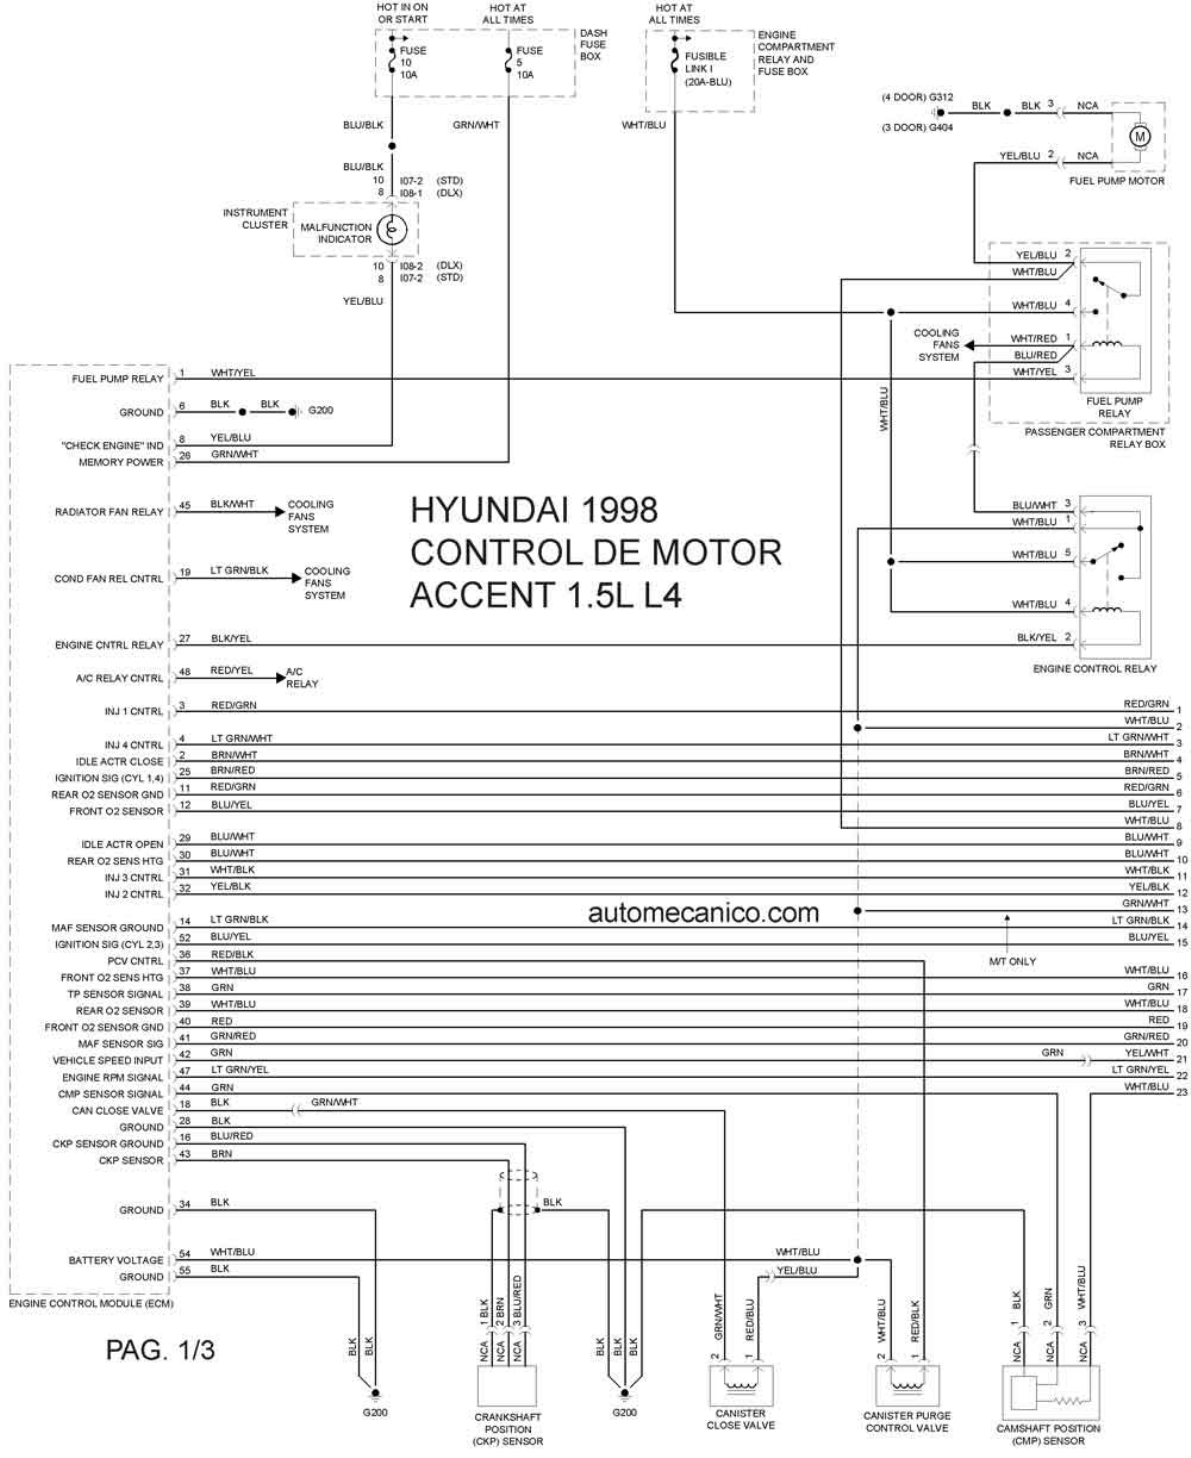 1998 Hyundai Accent Wiring Diagram Wiring Circuit \u2022 Hyundai Accent  Engine Diagram Hyundai Accent 2007 Radio Wiring Diagram